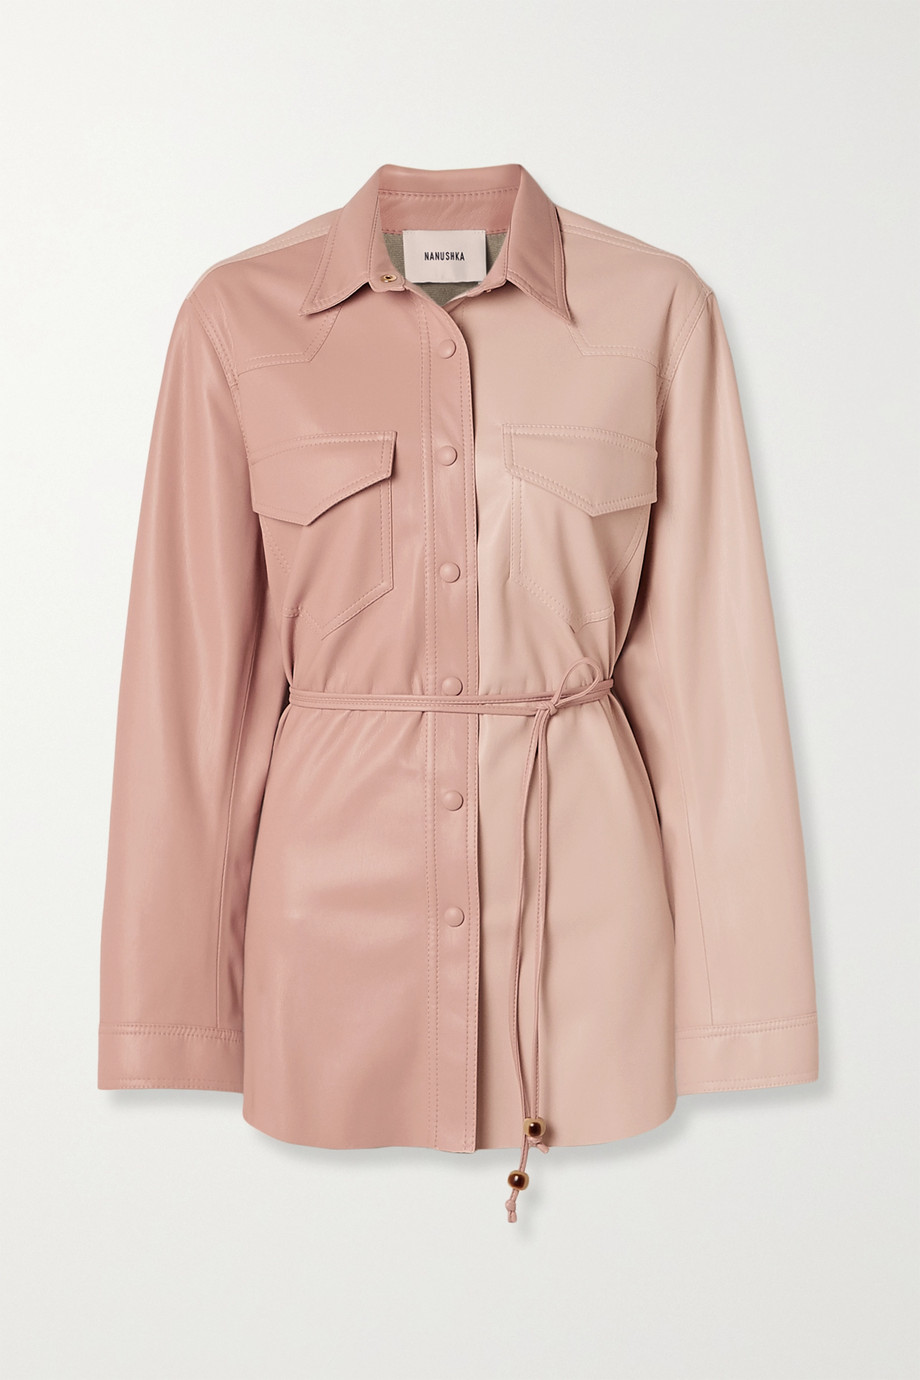 Nanushka Eddy belted two-tone vegan leather shirt